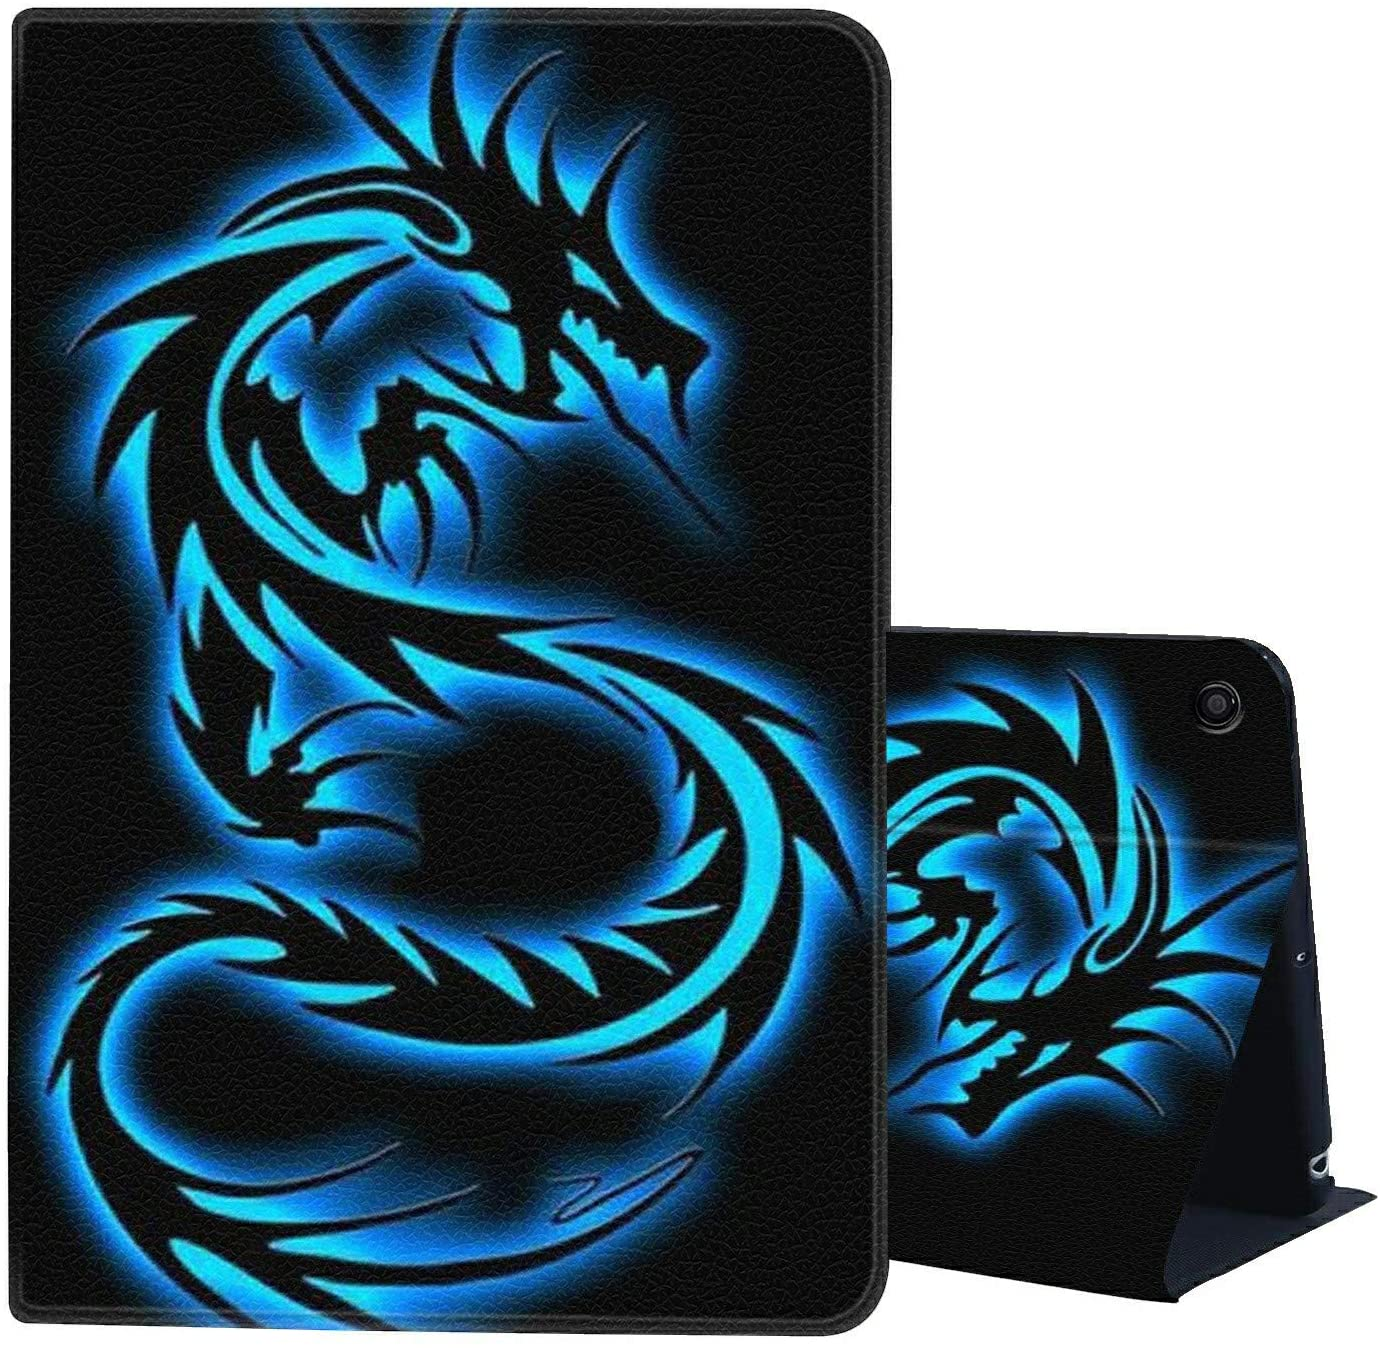 Case for All-New Kindle Fire HD 10 Tablet Case (2019/2017,9th/7th Gen) - AIRWEE Ultra Slim PU Leather+Shockproof TPU Multi Angle Folding Case with Auto Wake/Sleep,Blue Dragon